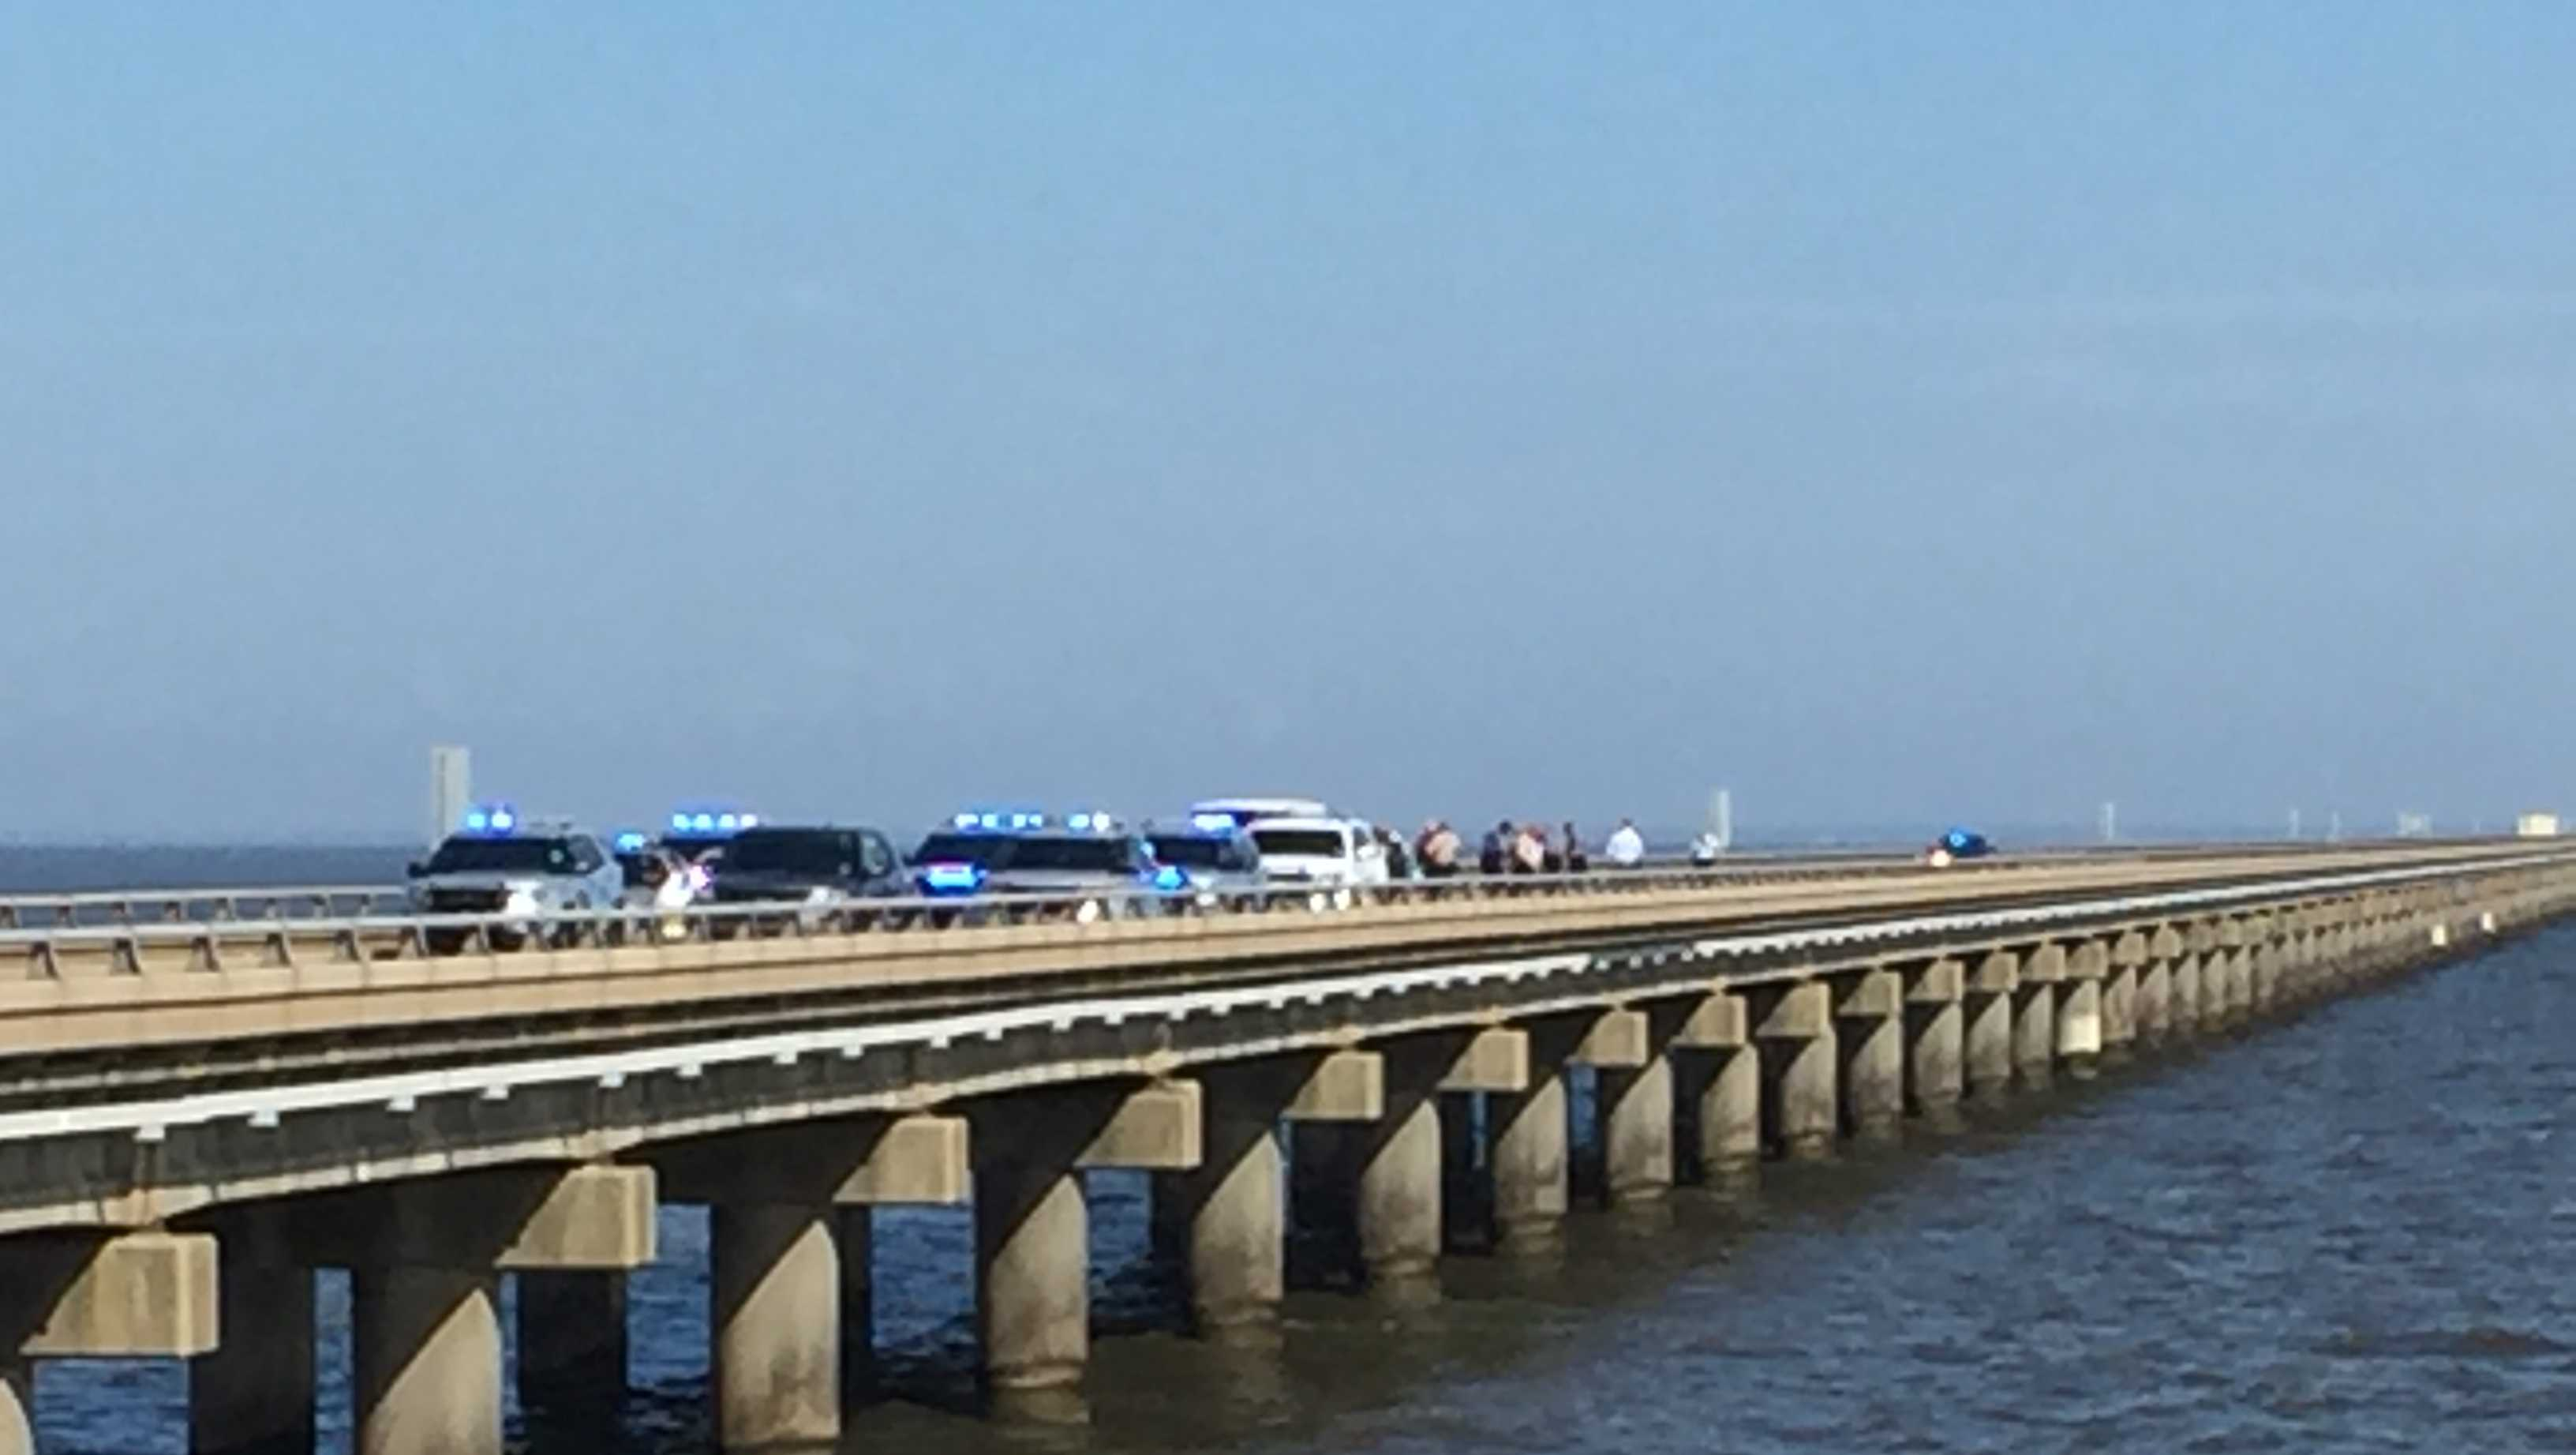 Police activity on the Causeway closes south lanes